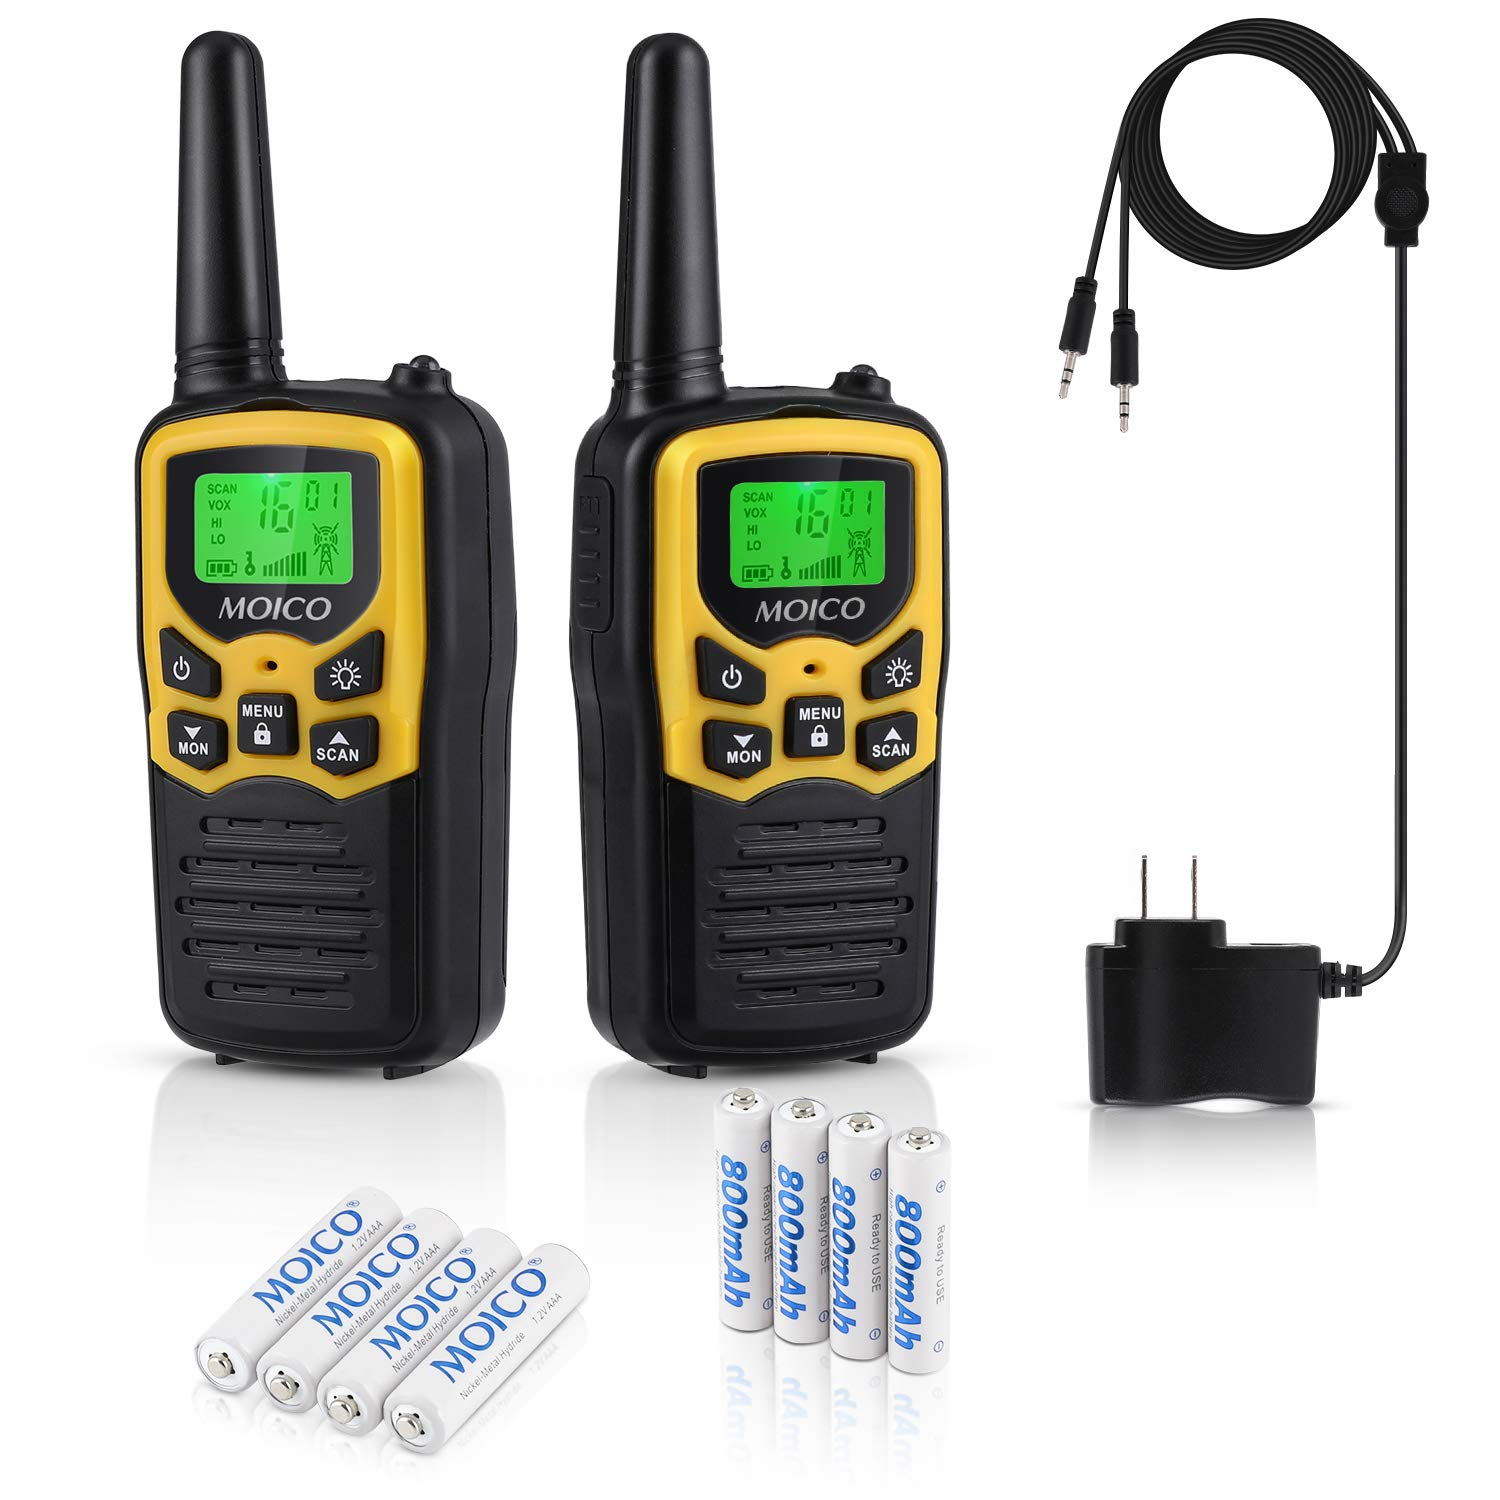 Professional Rechargeable Walkie Talkies,MOICO Long Range Two Way Radios for Adults up to 5 Miles in Open Area,Handheld Talkies Talky with 22 Channels FRS/GMRS VOX Scan LCD Display LED Flashlight by MOICO